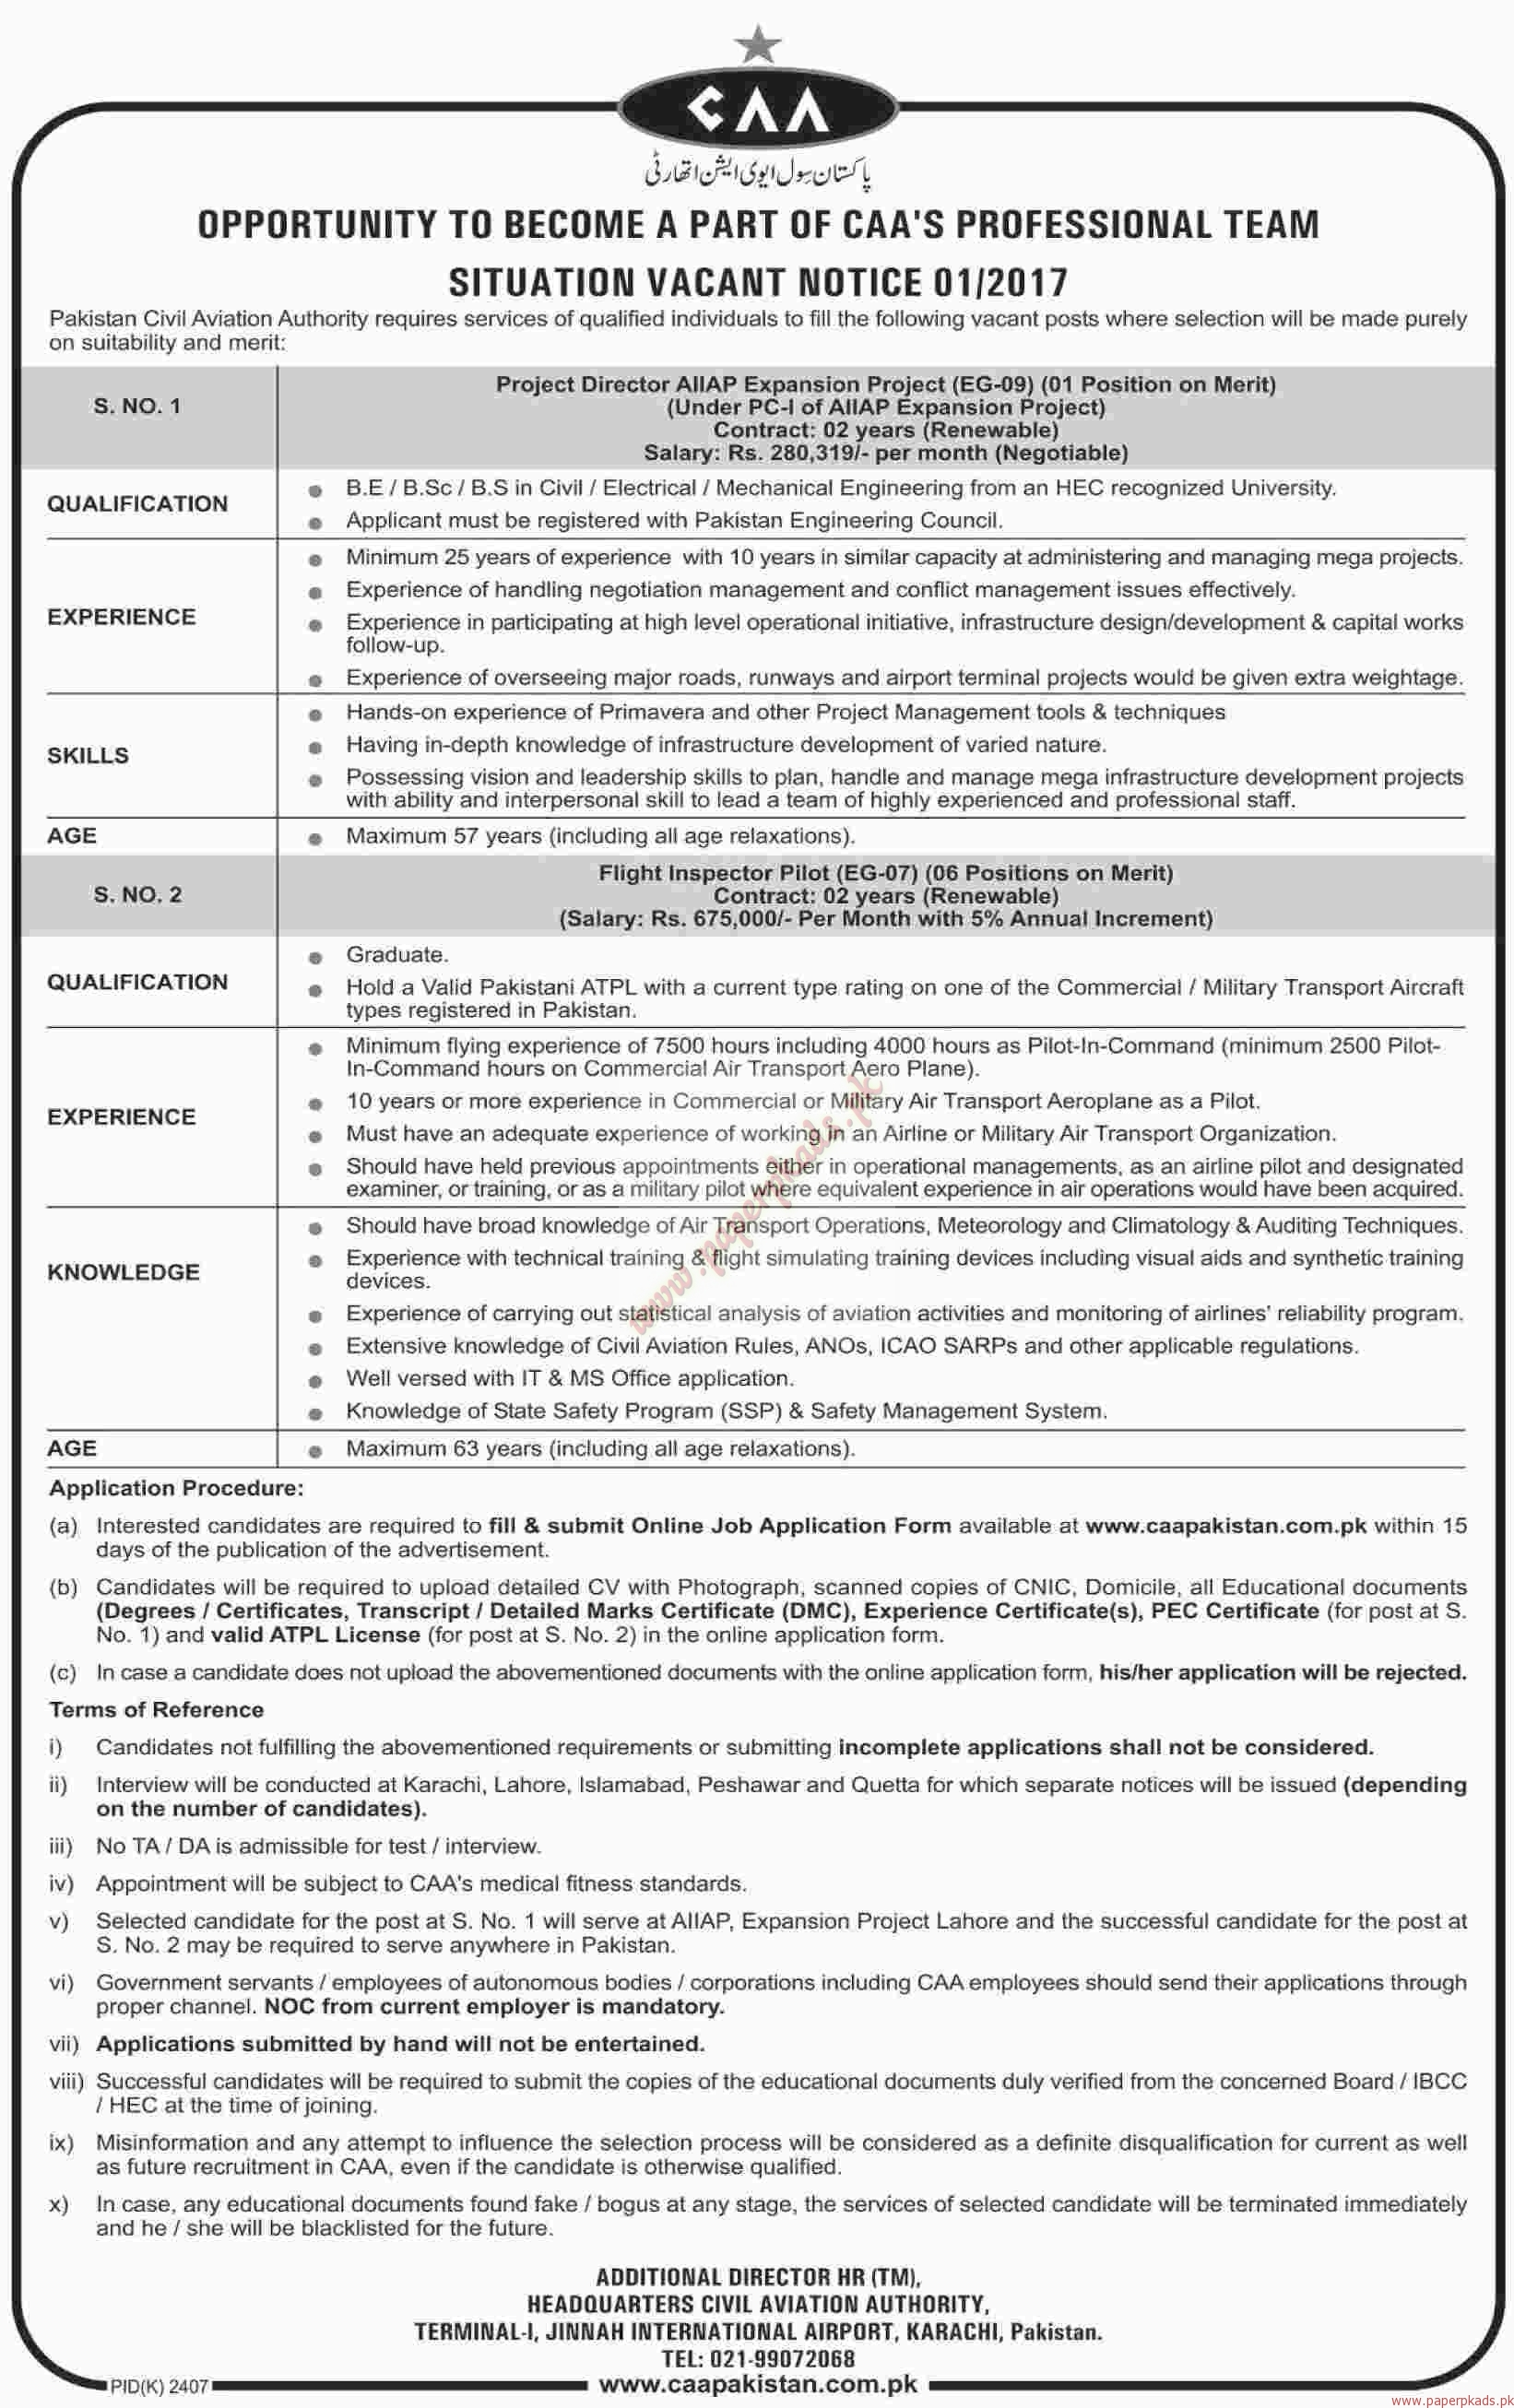 Pakistan Civil Aviation Authority Jobs - Dawn Jobs ads 01 January 2017